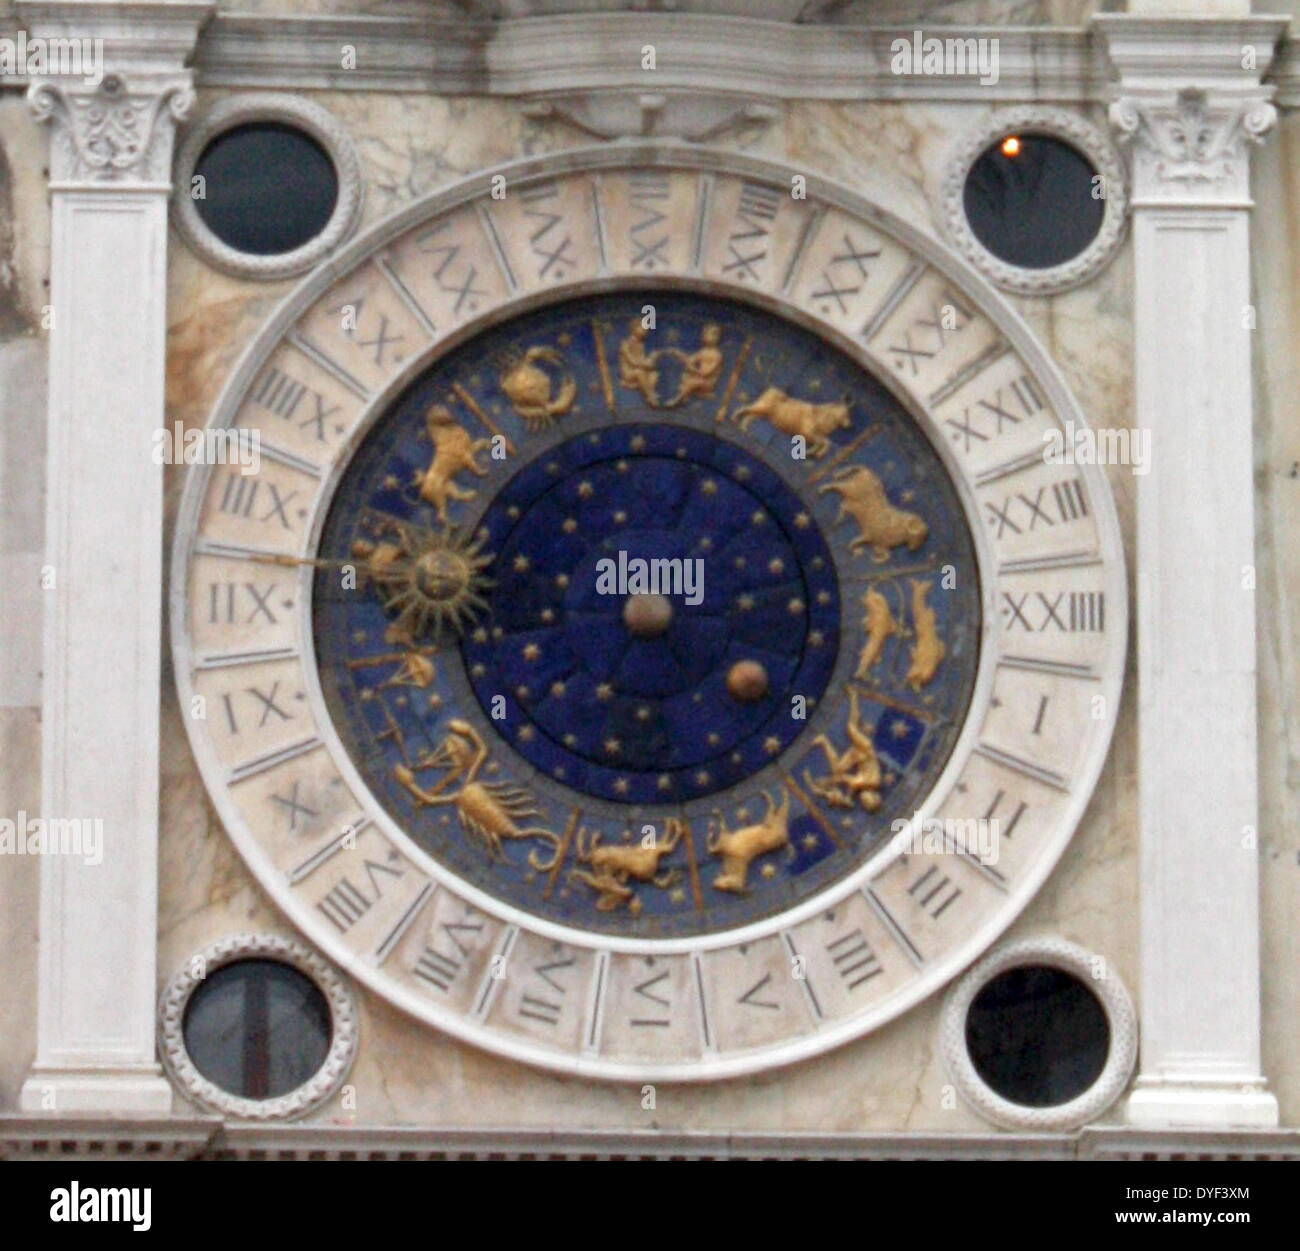 The Clockface of St Mark's Clocktower 2013. - Stock Image